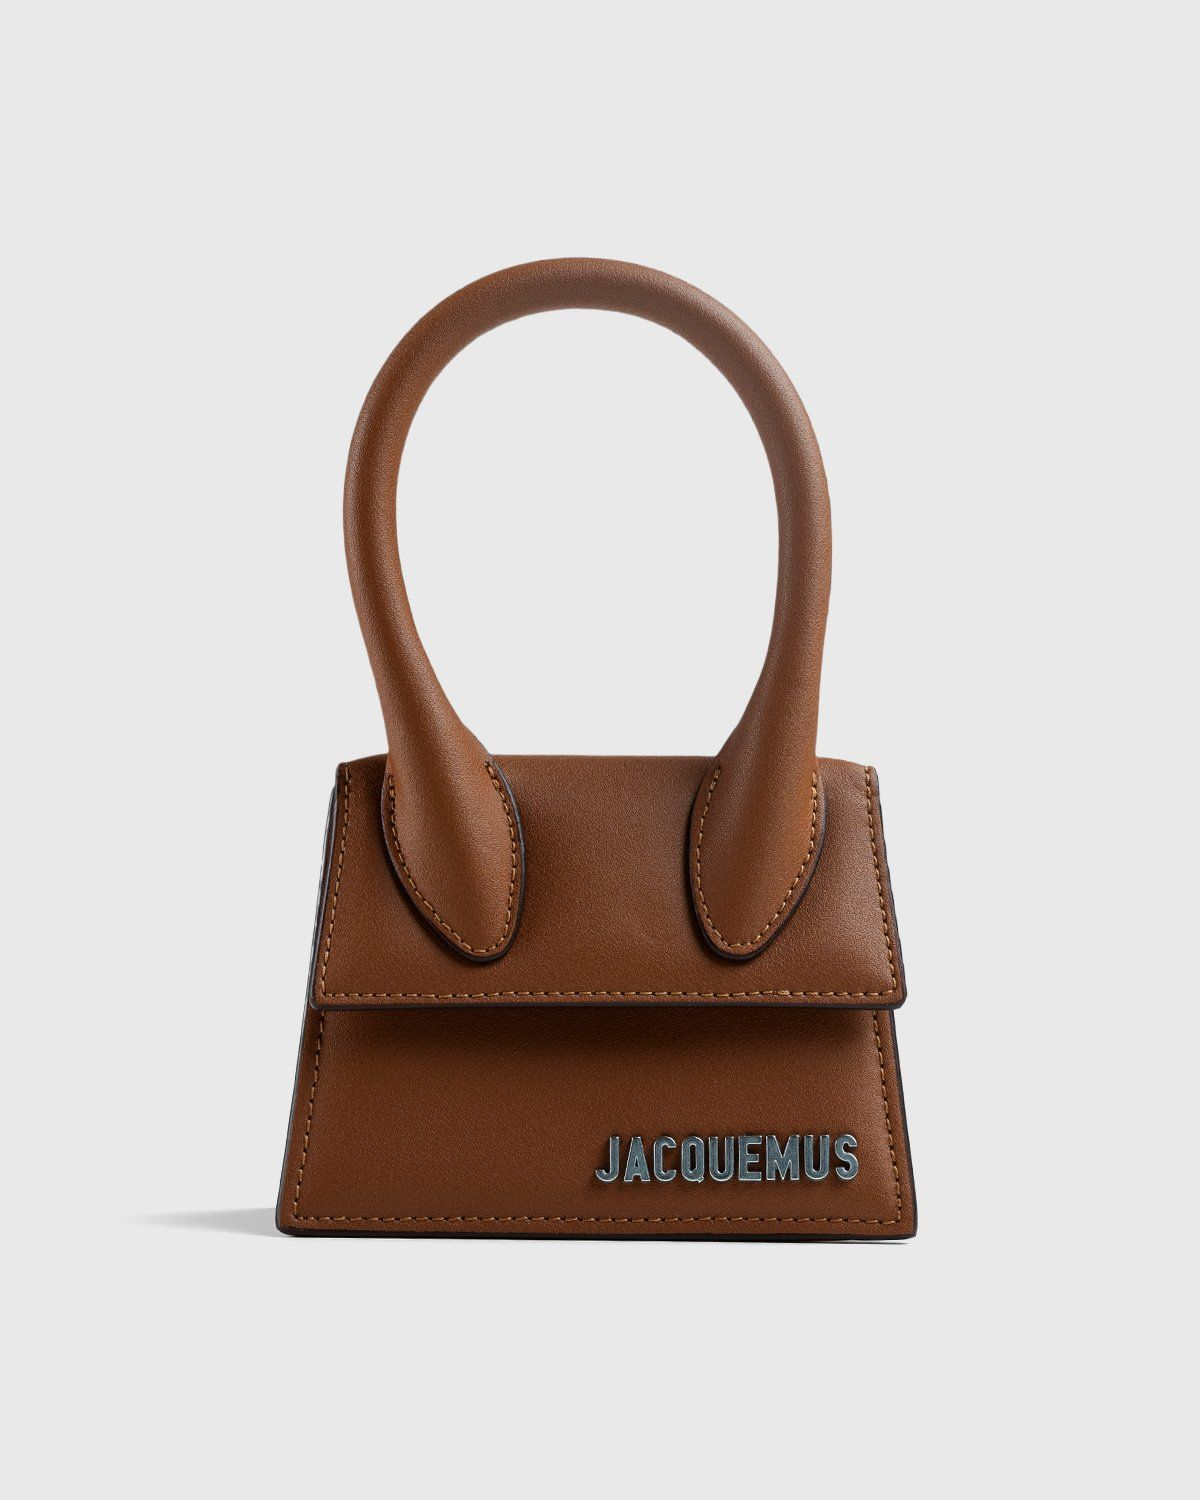 Jacquemus – Le Chiquito Homme Brown - Image 1